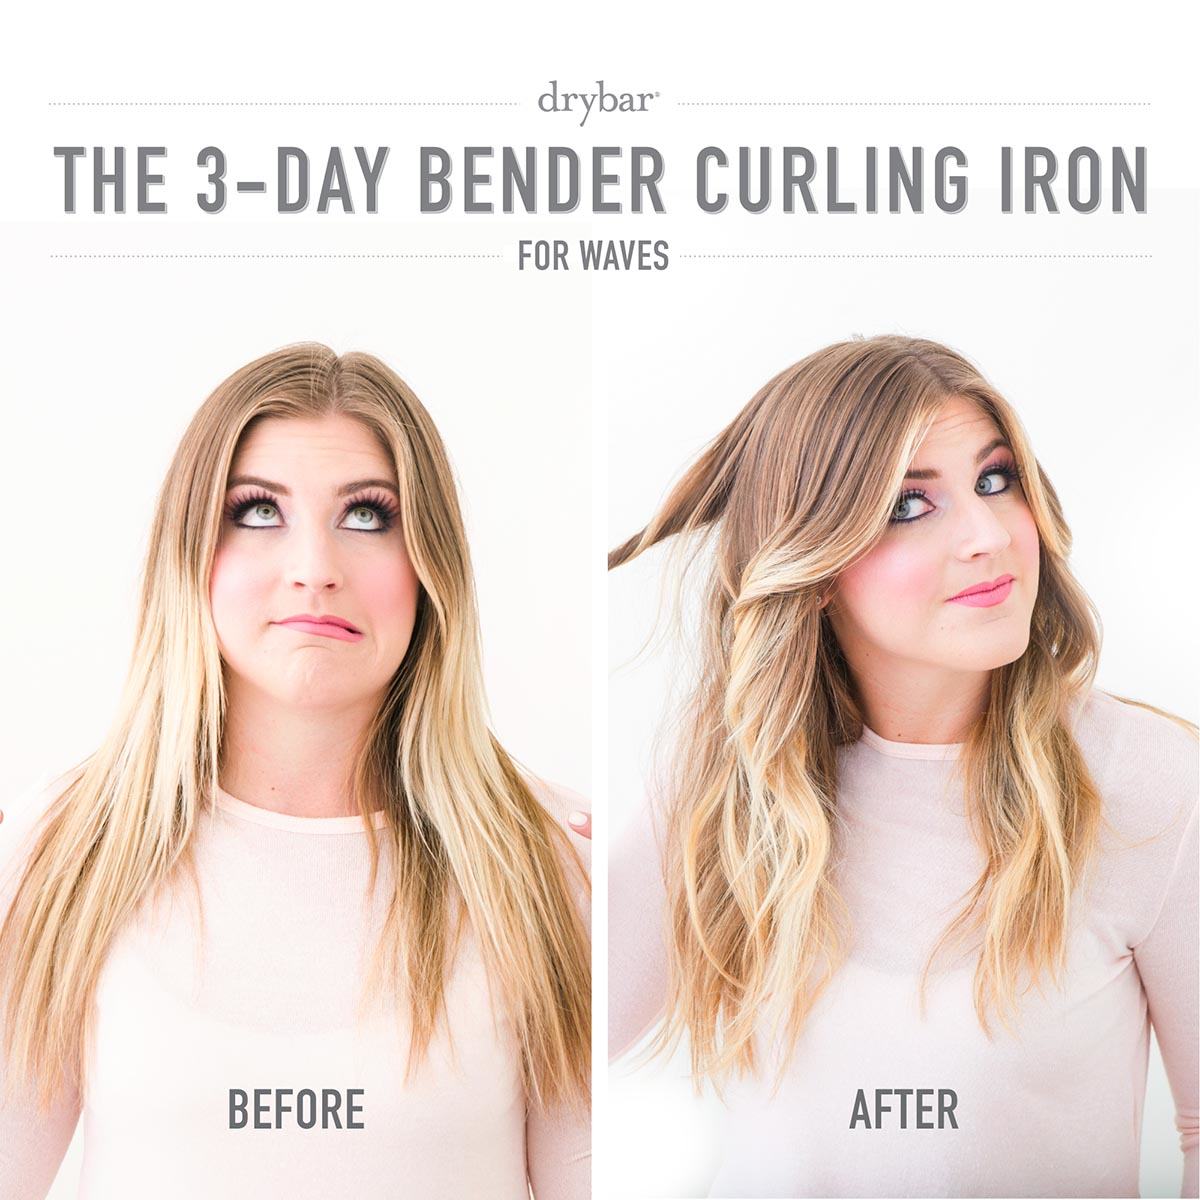 THE 3-DAY BENDER 1.25 DIGITAL CURLING IRON (TENAZA PARA EL CABELLO)